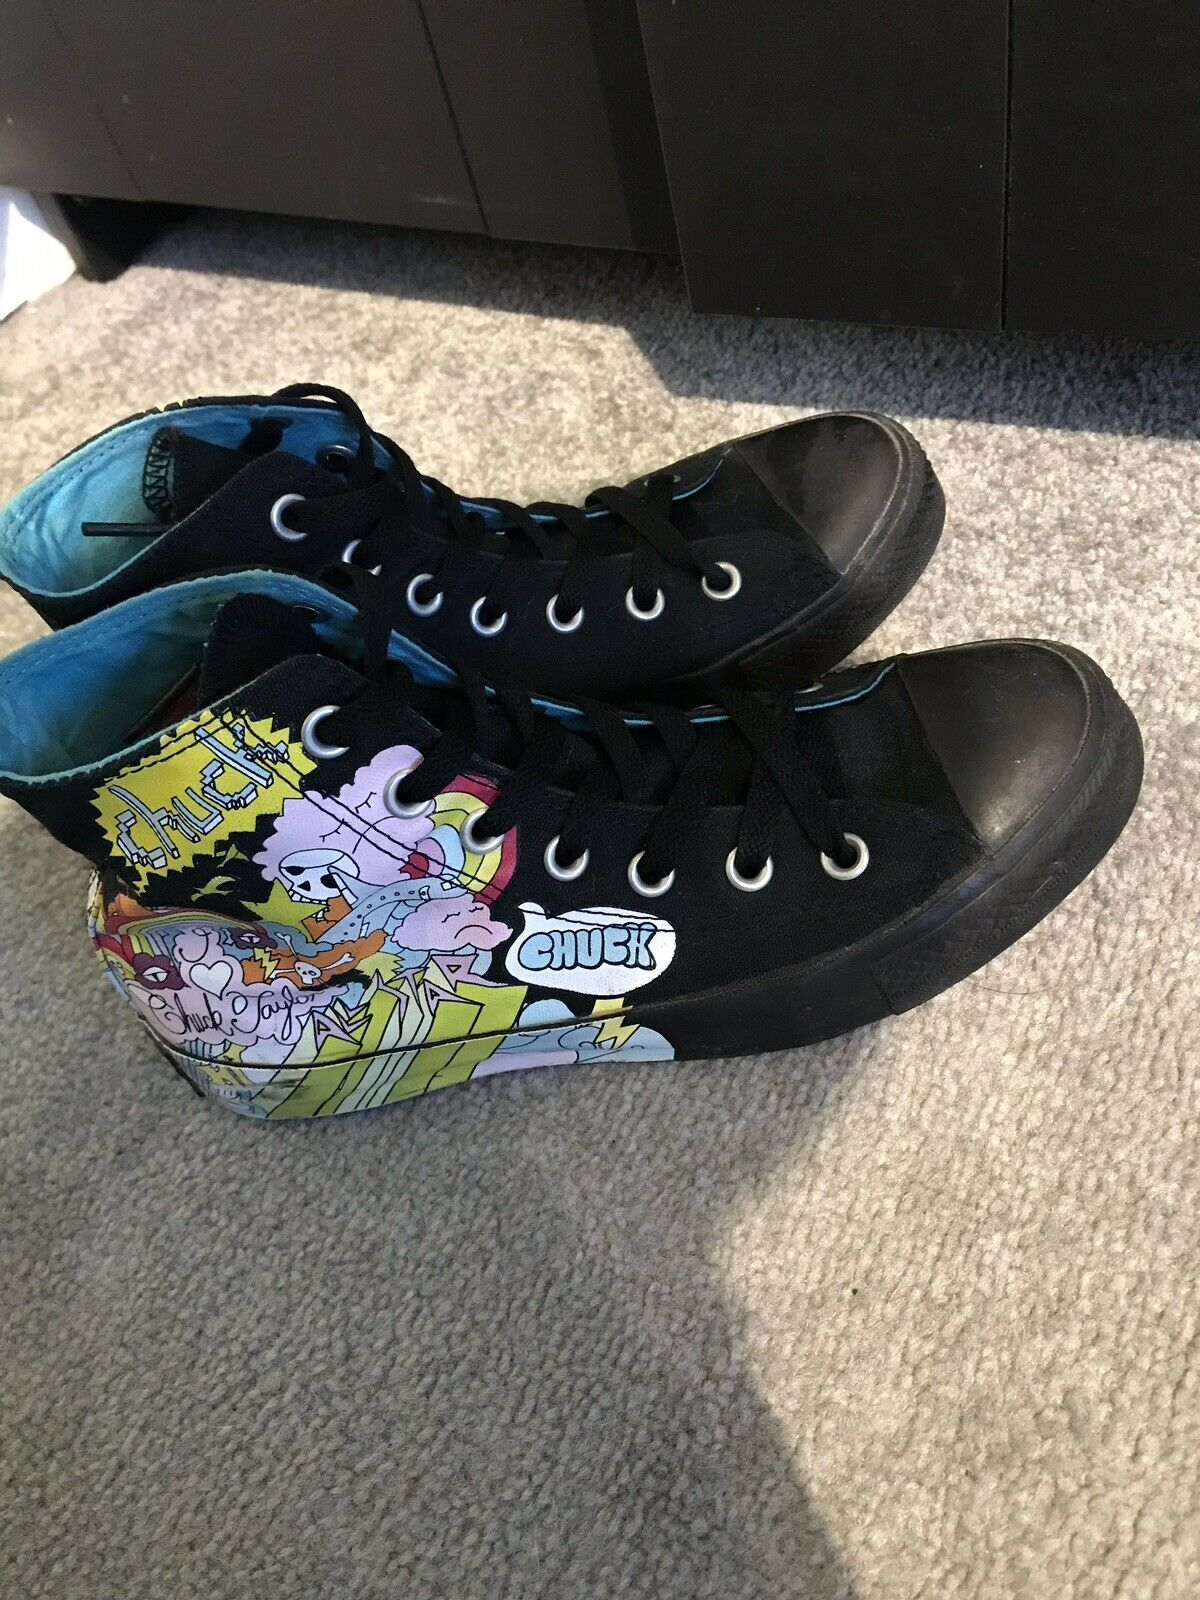 damen Or Mens Rainbow Converse Trainers, Uk 6, 6, 6, Limited Edition b1a7af